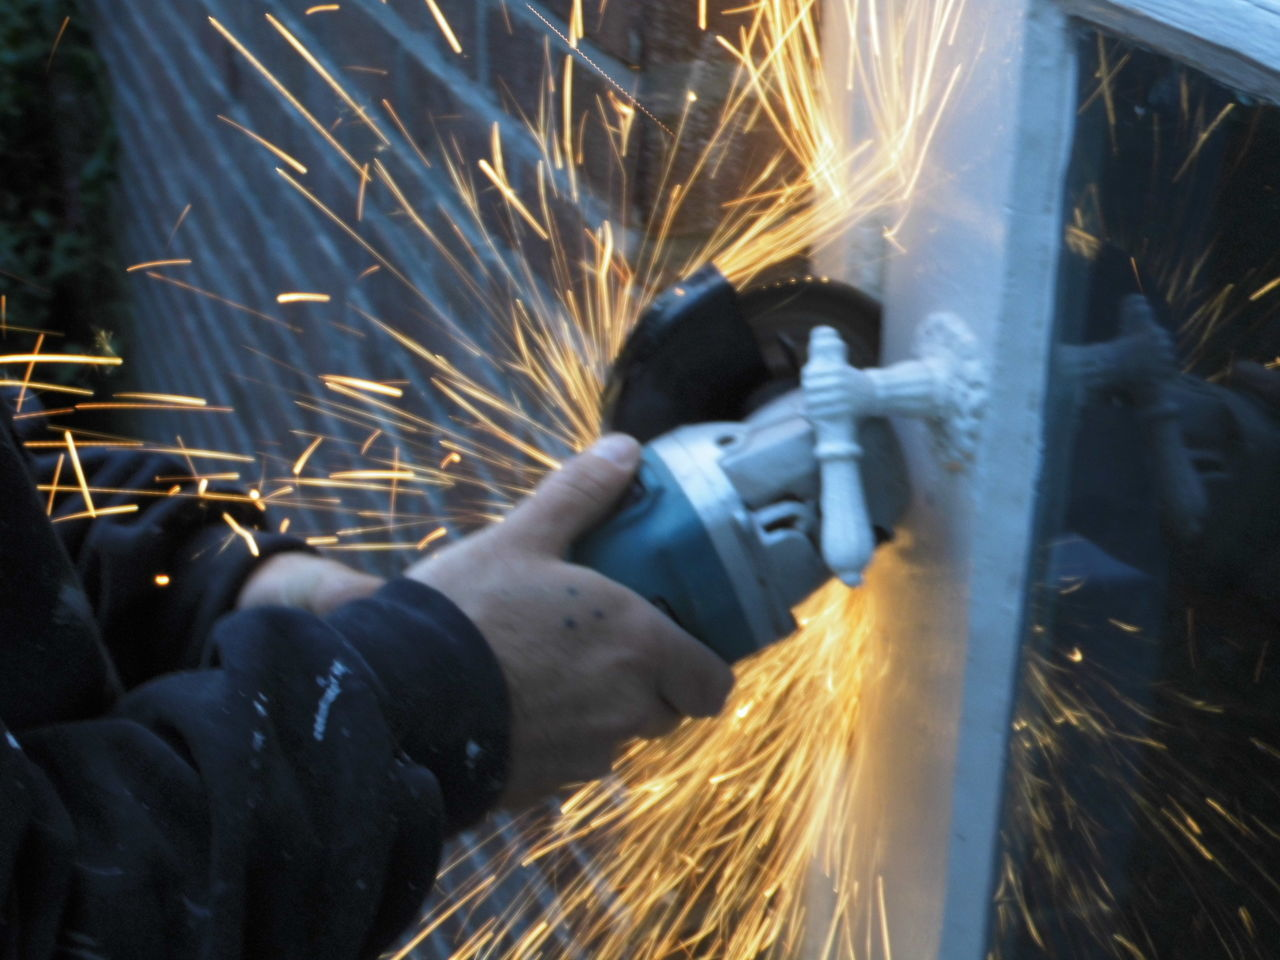 Detail Motion Noise Occupation Speed Tools Working Hands